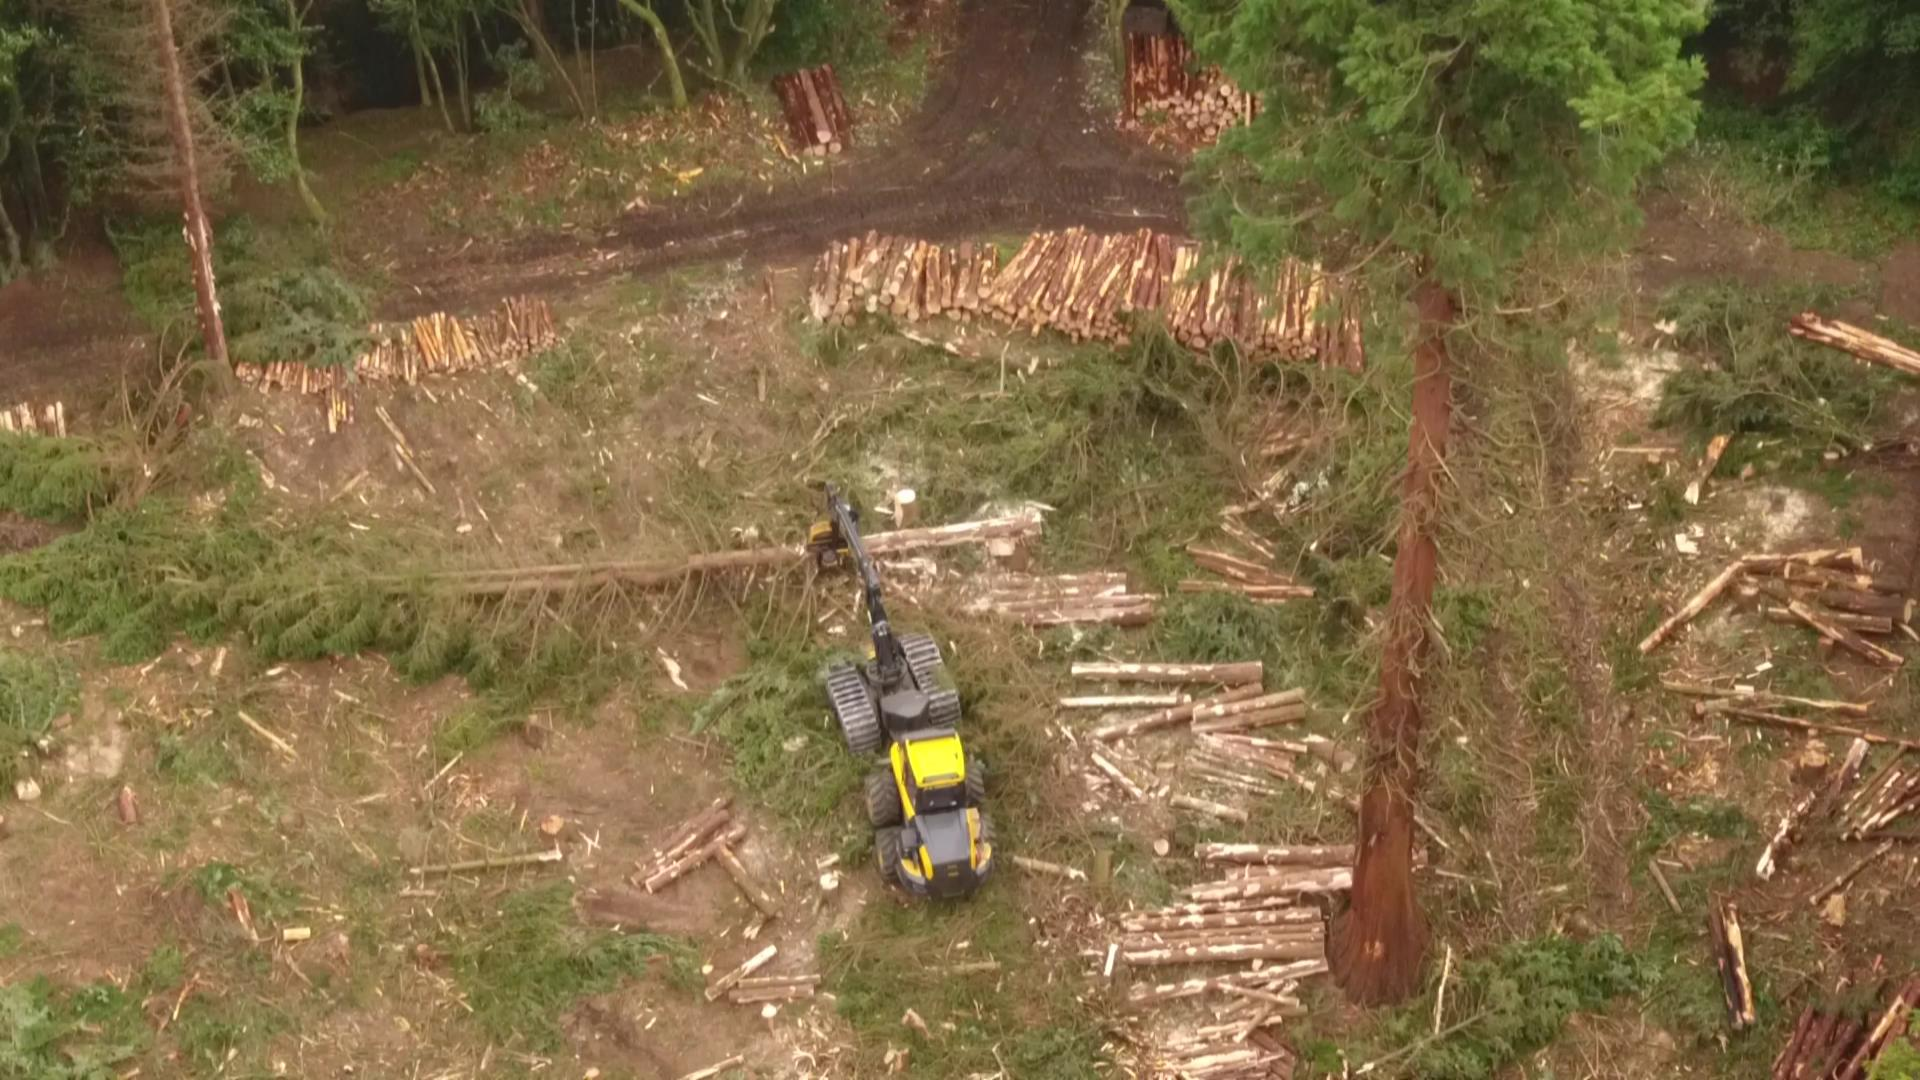 The forestry harvesters were designed specially to cope with steep terrain, courtesy of  Bjorn Aern, Drone Scotland, www.dronescotland.com